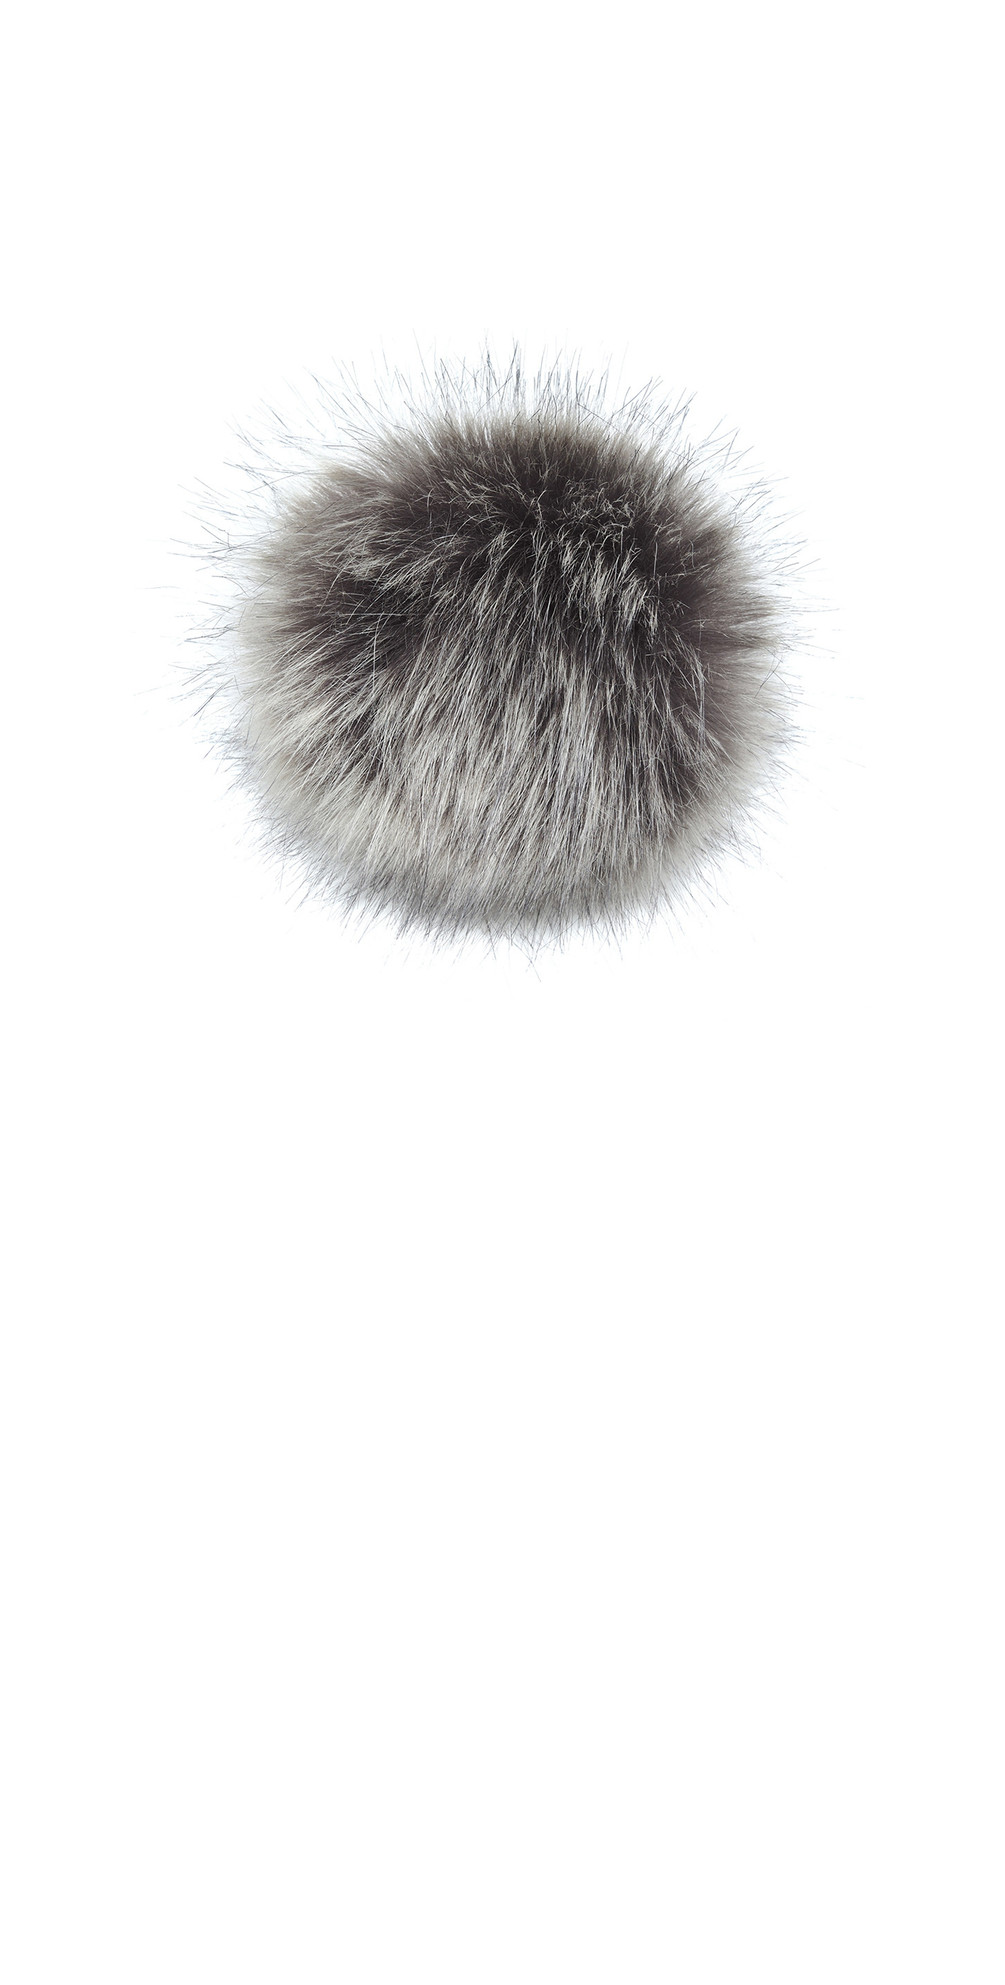 Faux Fur Single Pom Pom main image